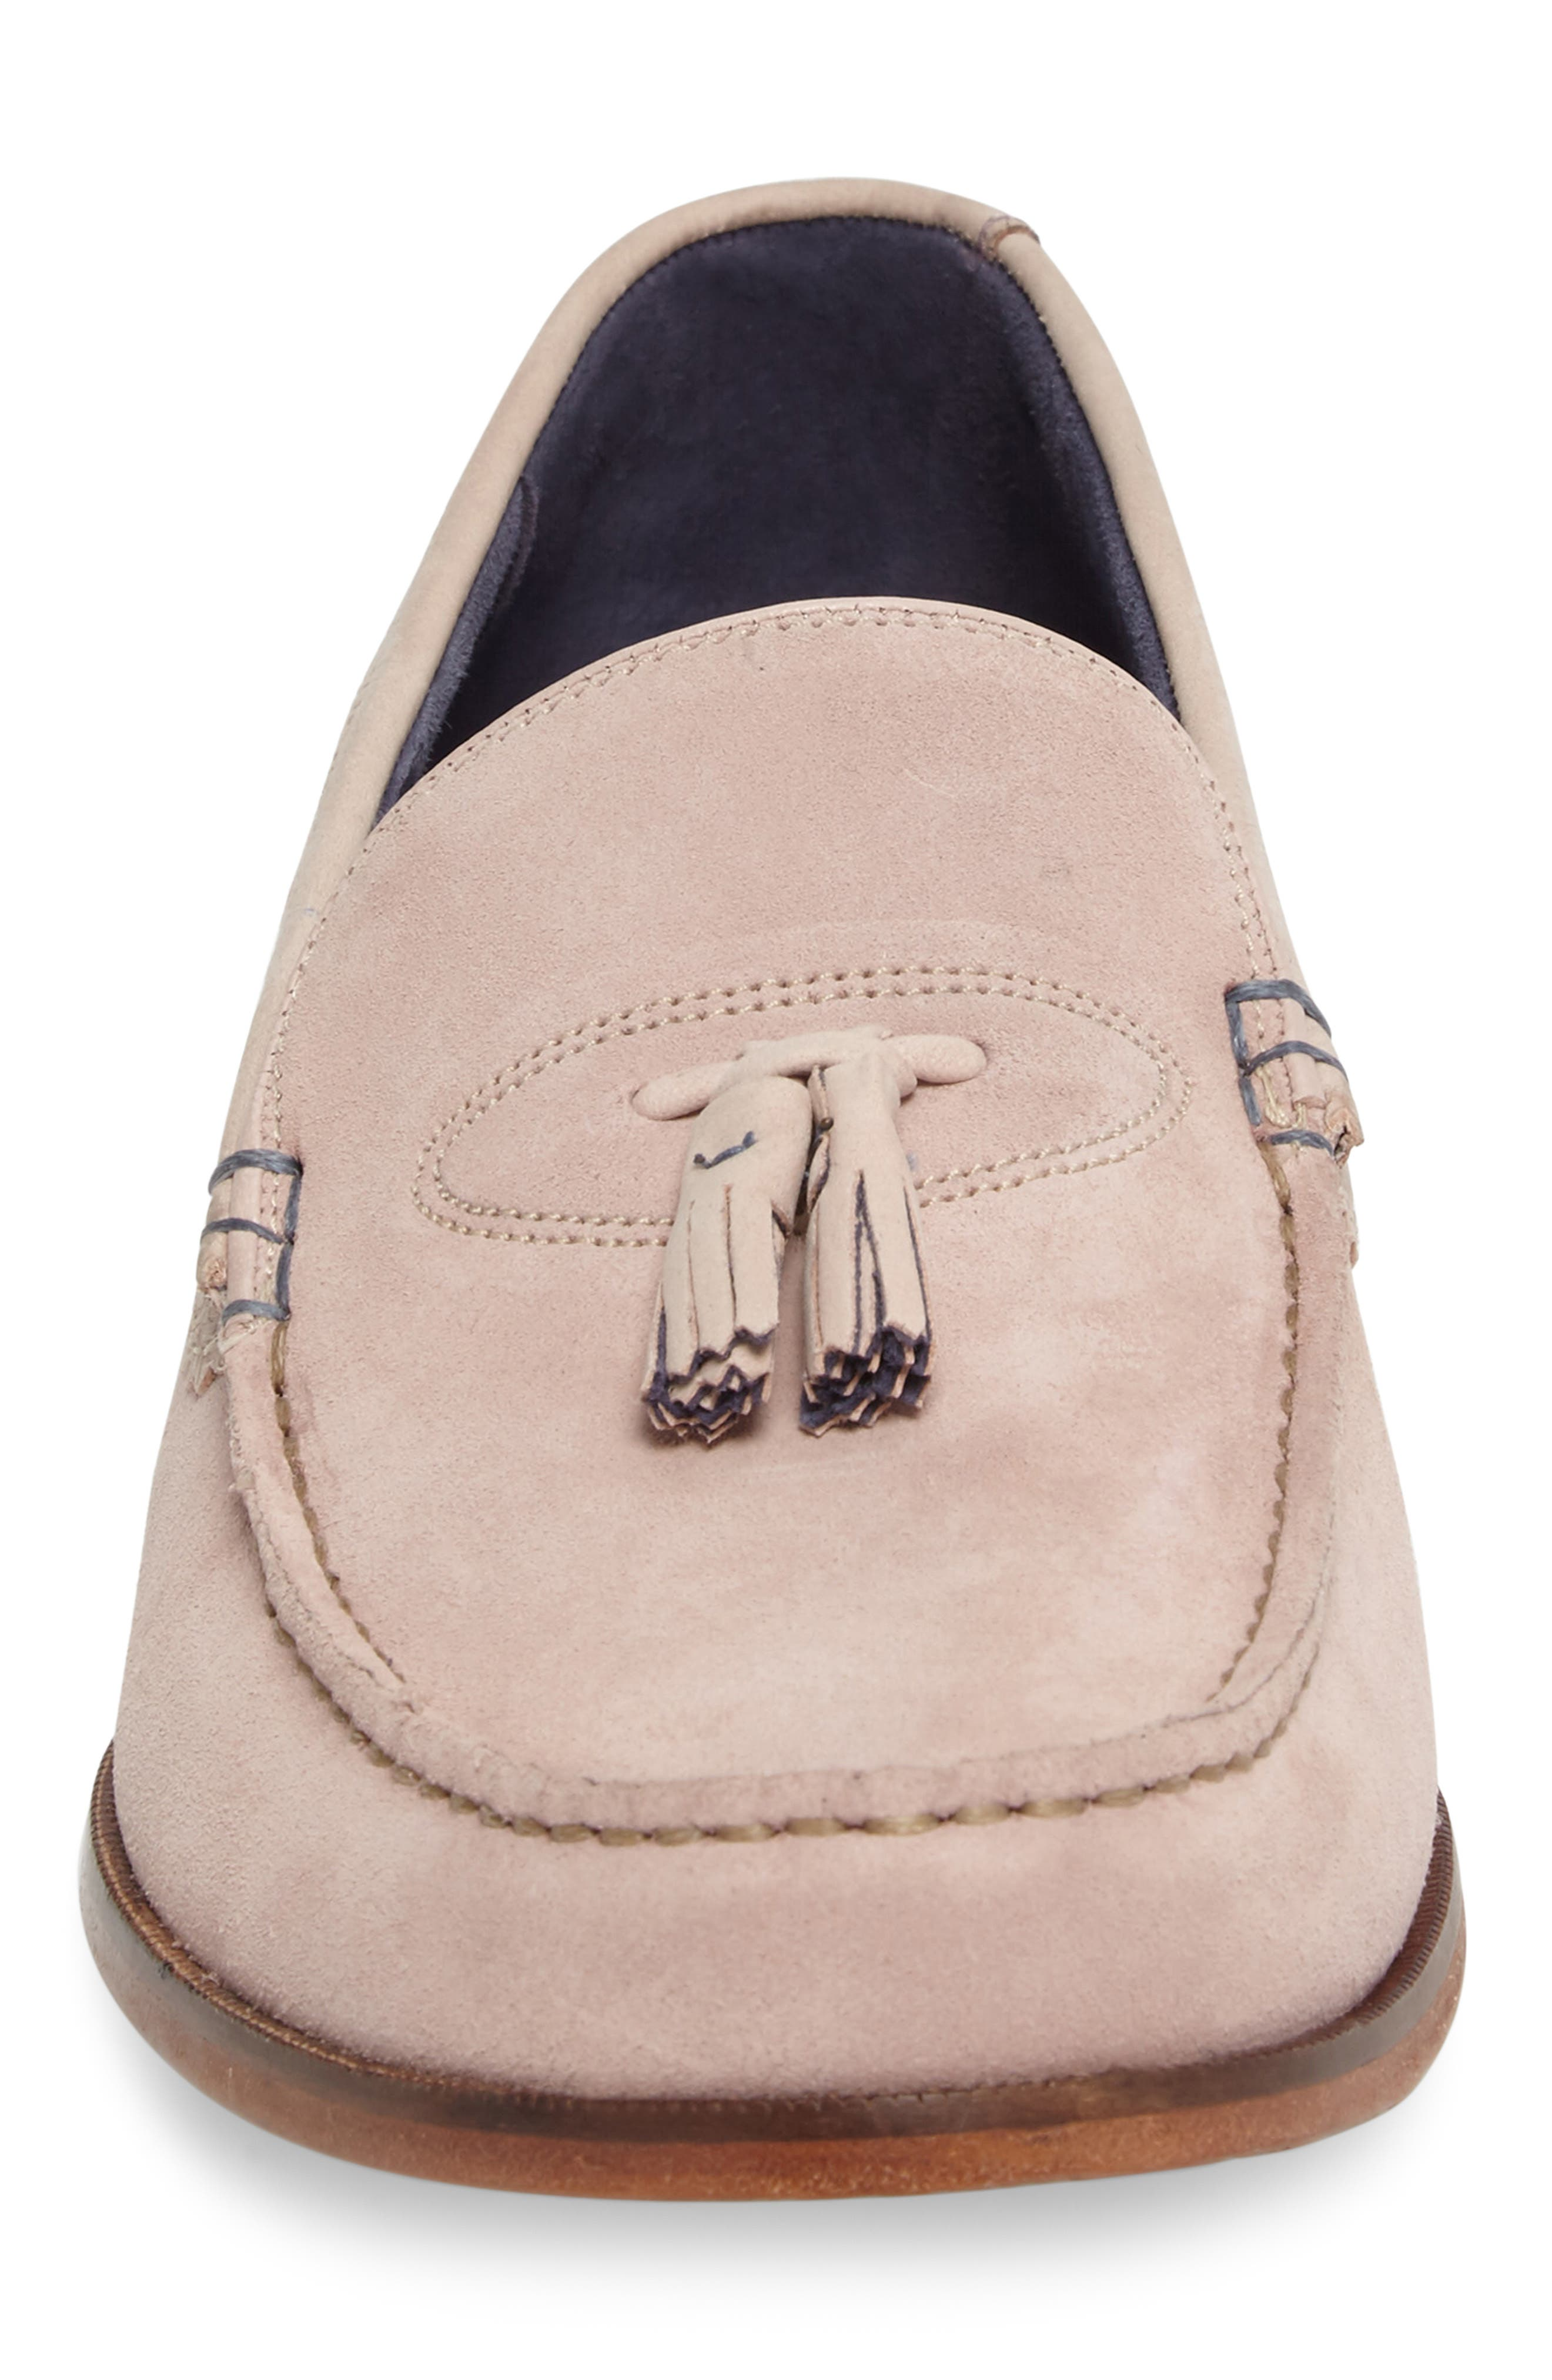 Dougge Tassel Loafer,                             Alternate thumbnail 24, color,